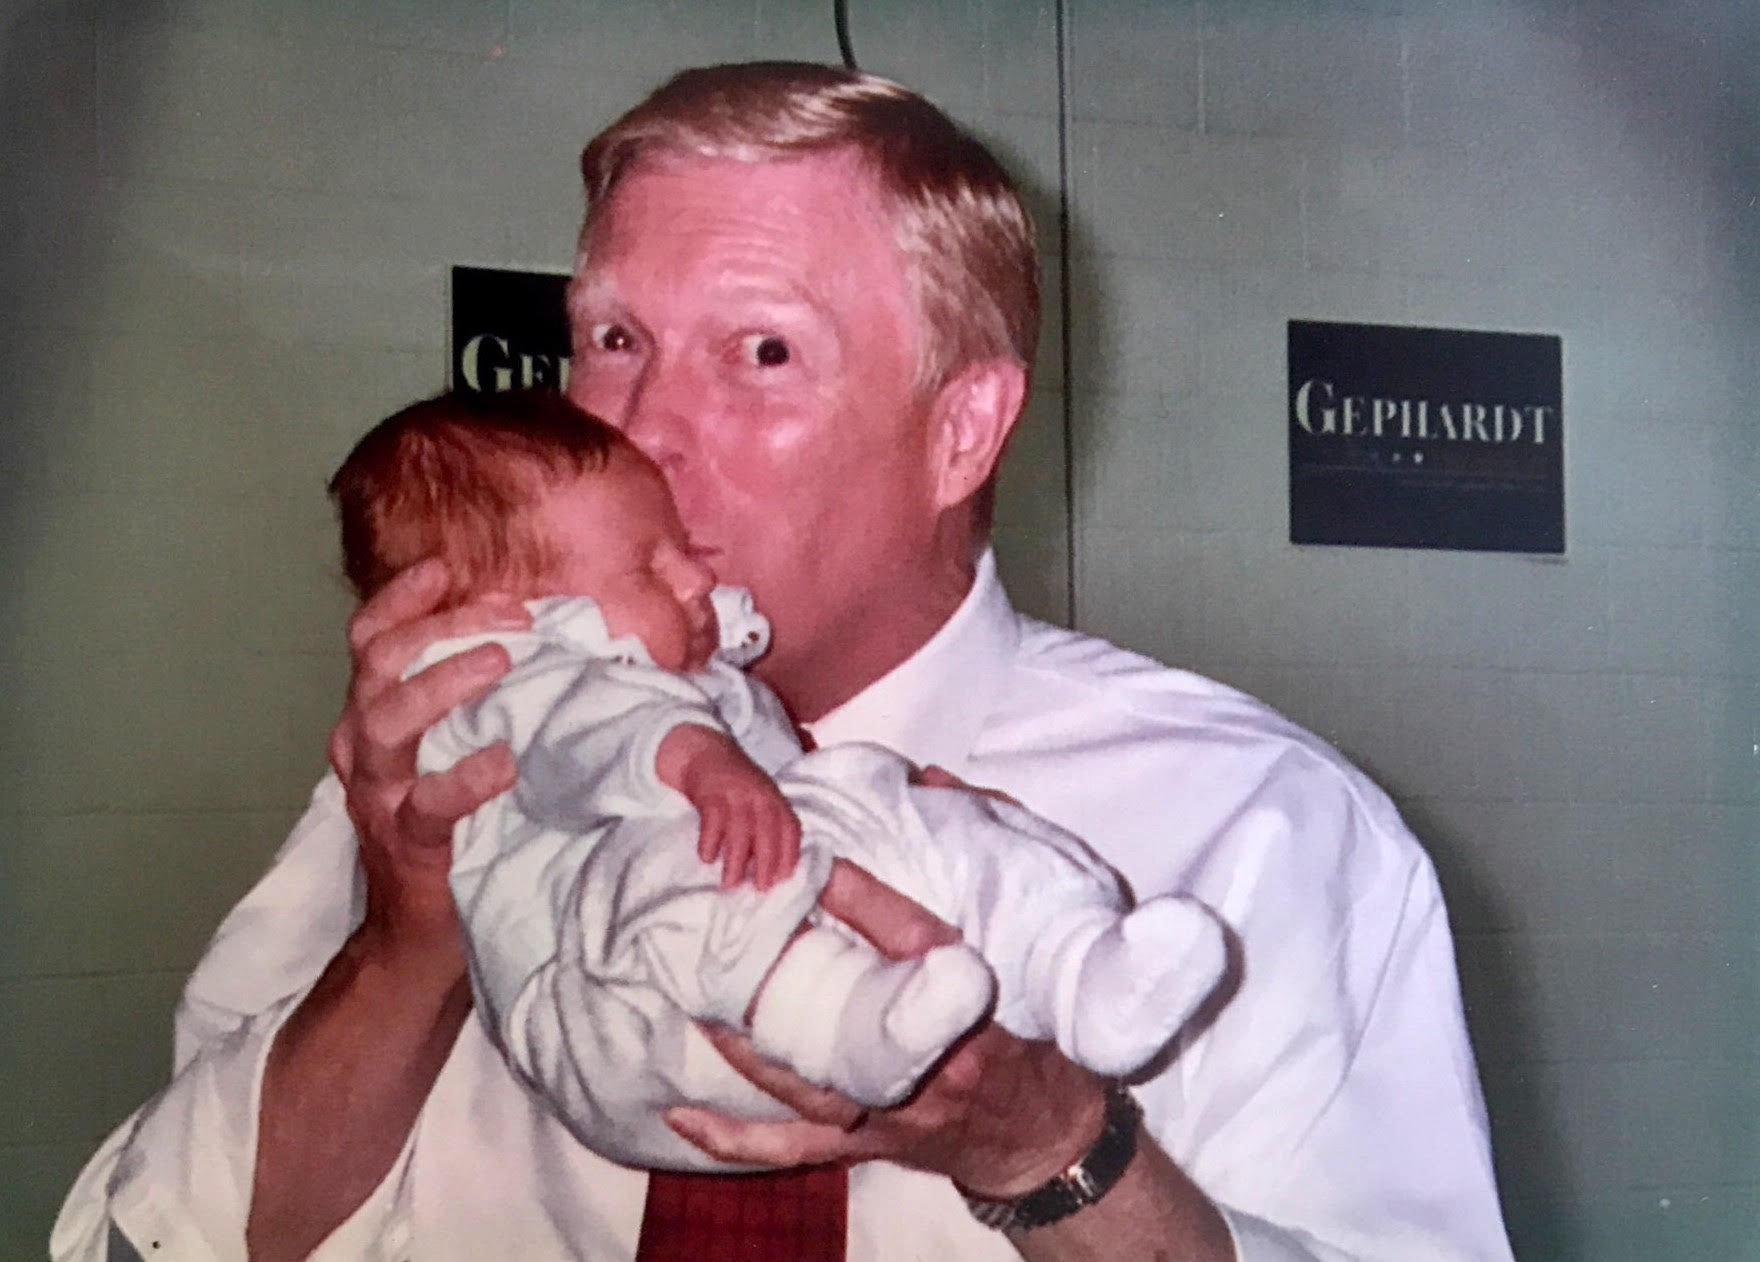 Gephardt with newborn Truman Lapp on the campaign trail in Iowa during his 2004 run for president. (Courtesy John Lapp)